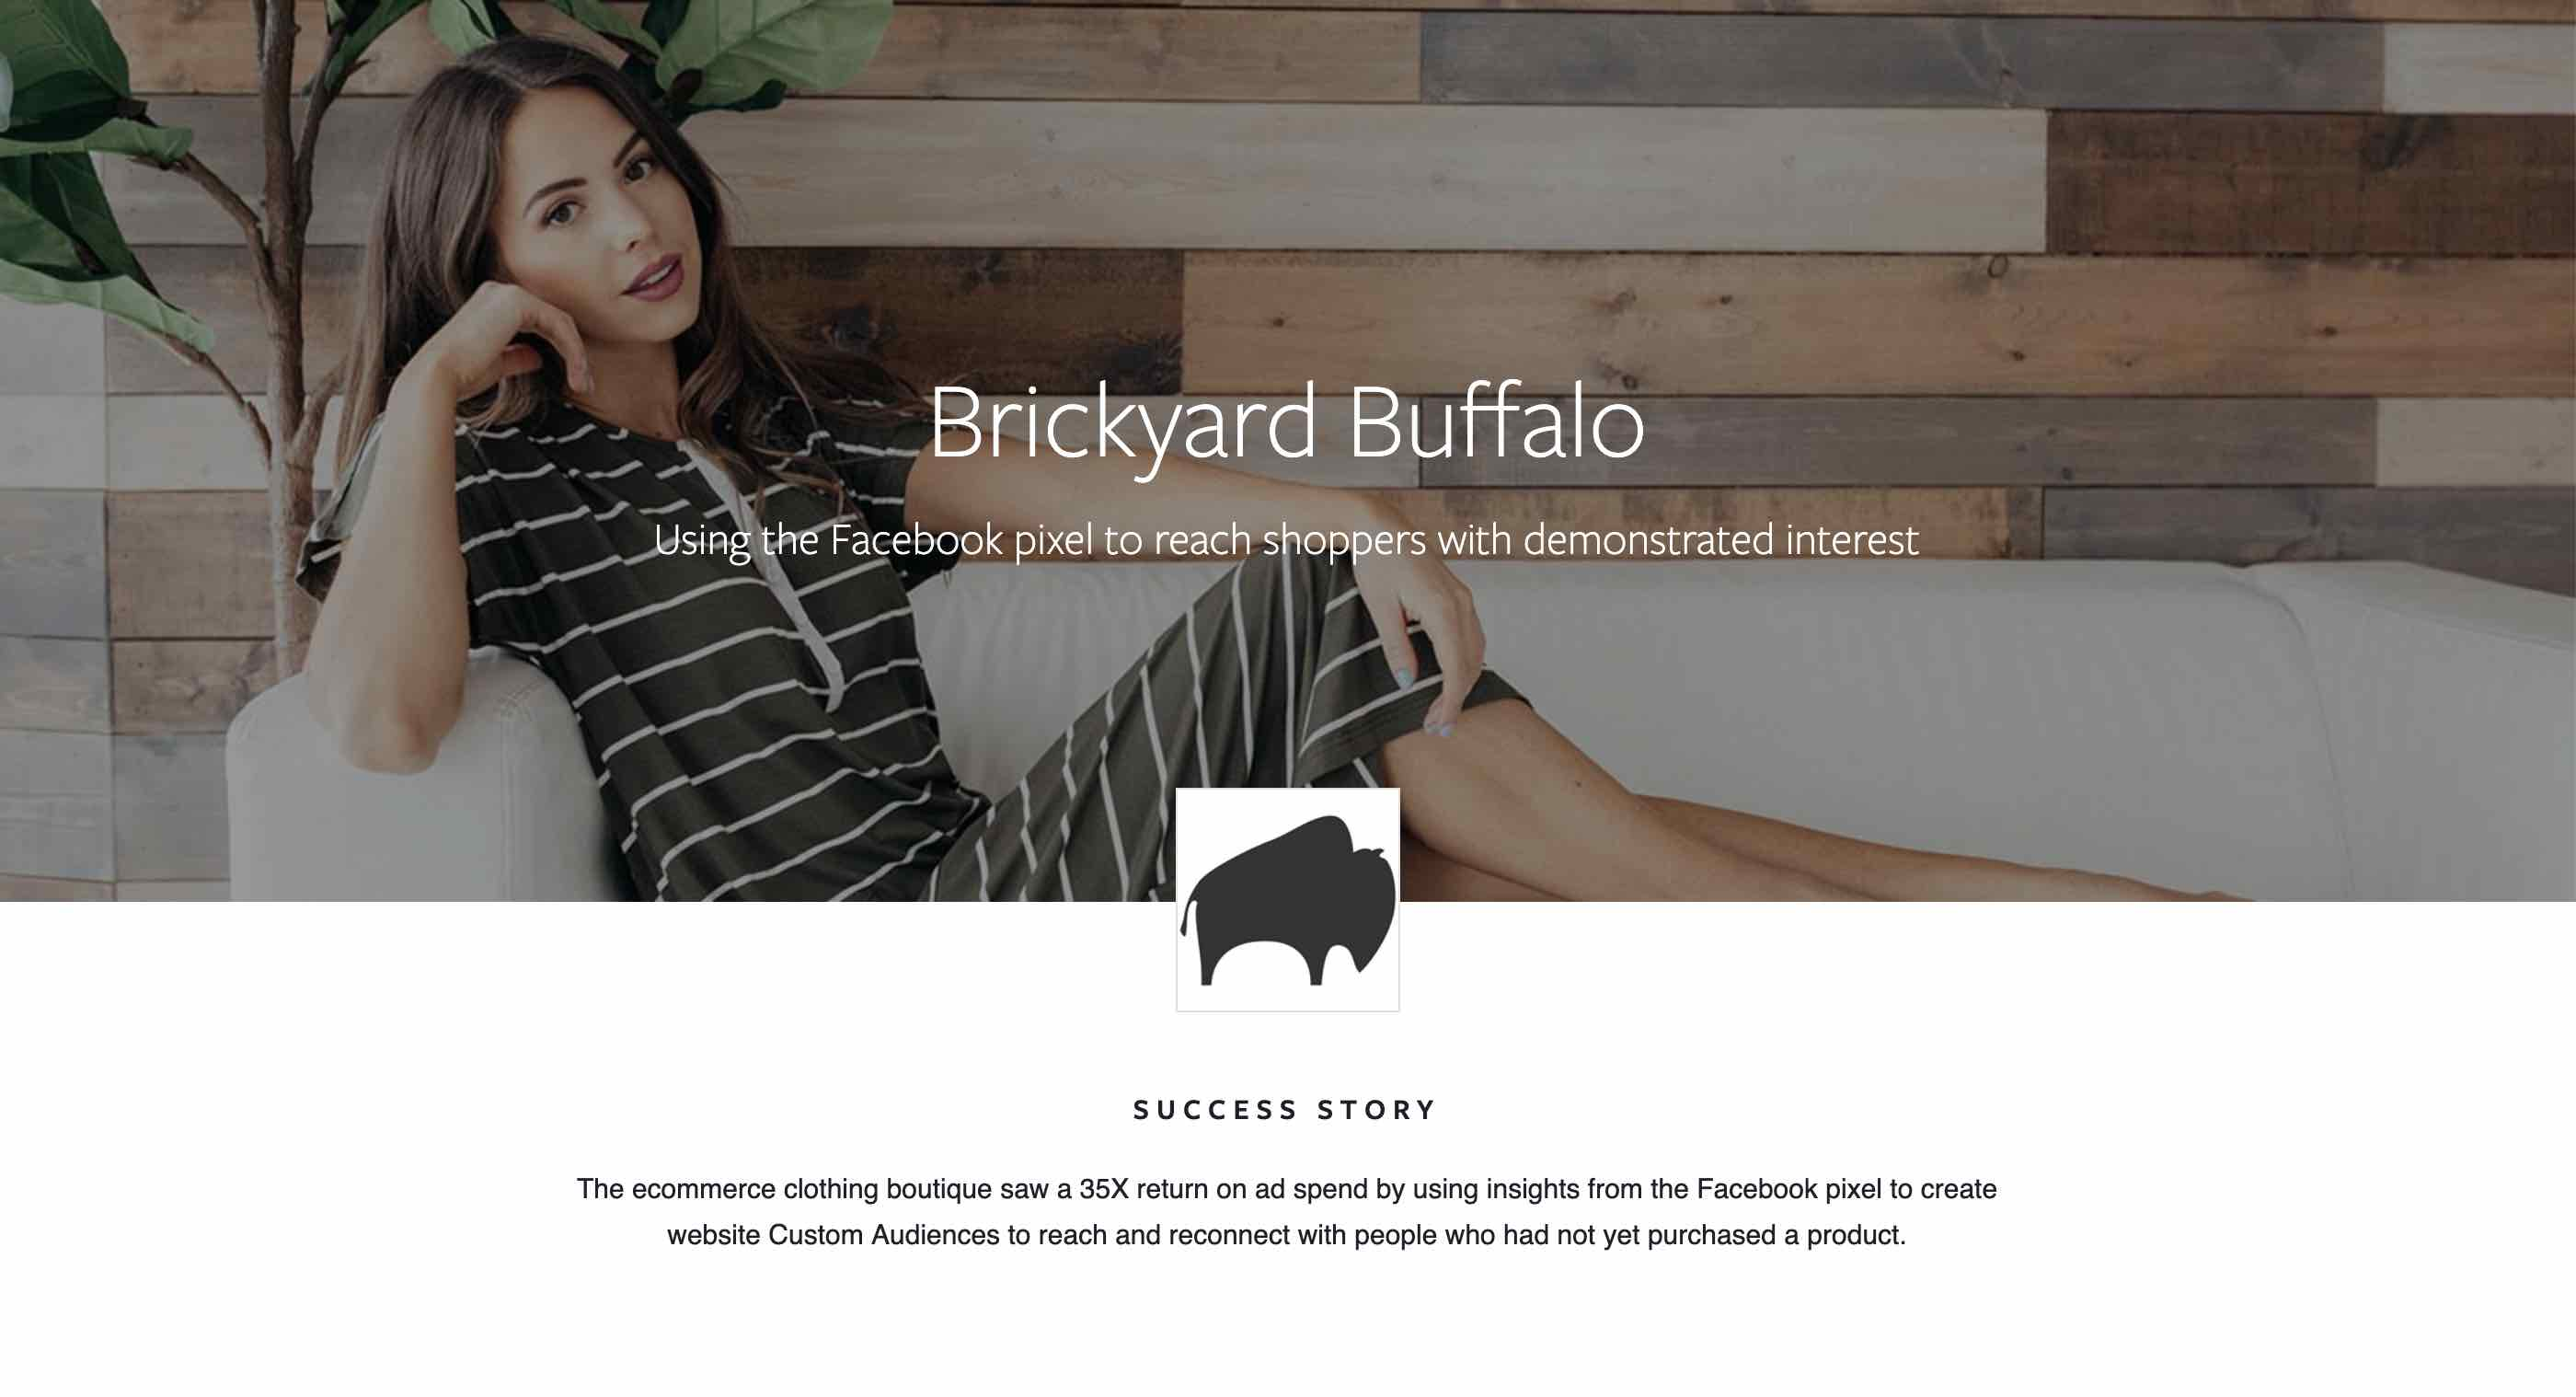 brickyard-buffalo-case-study-facebook